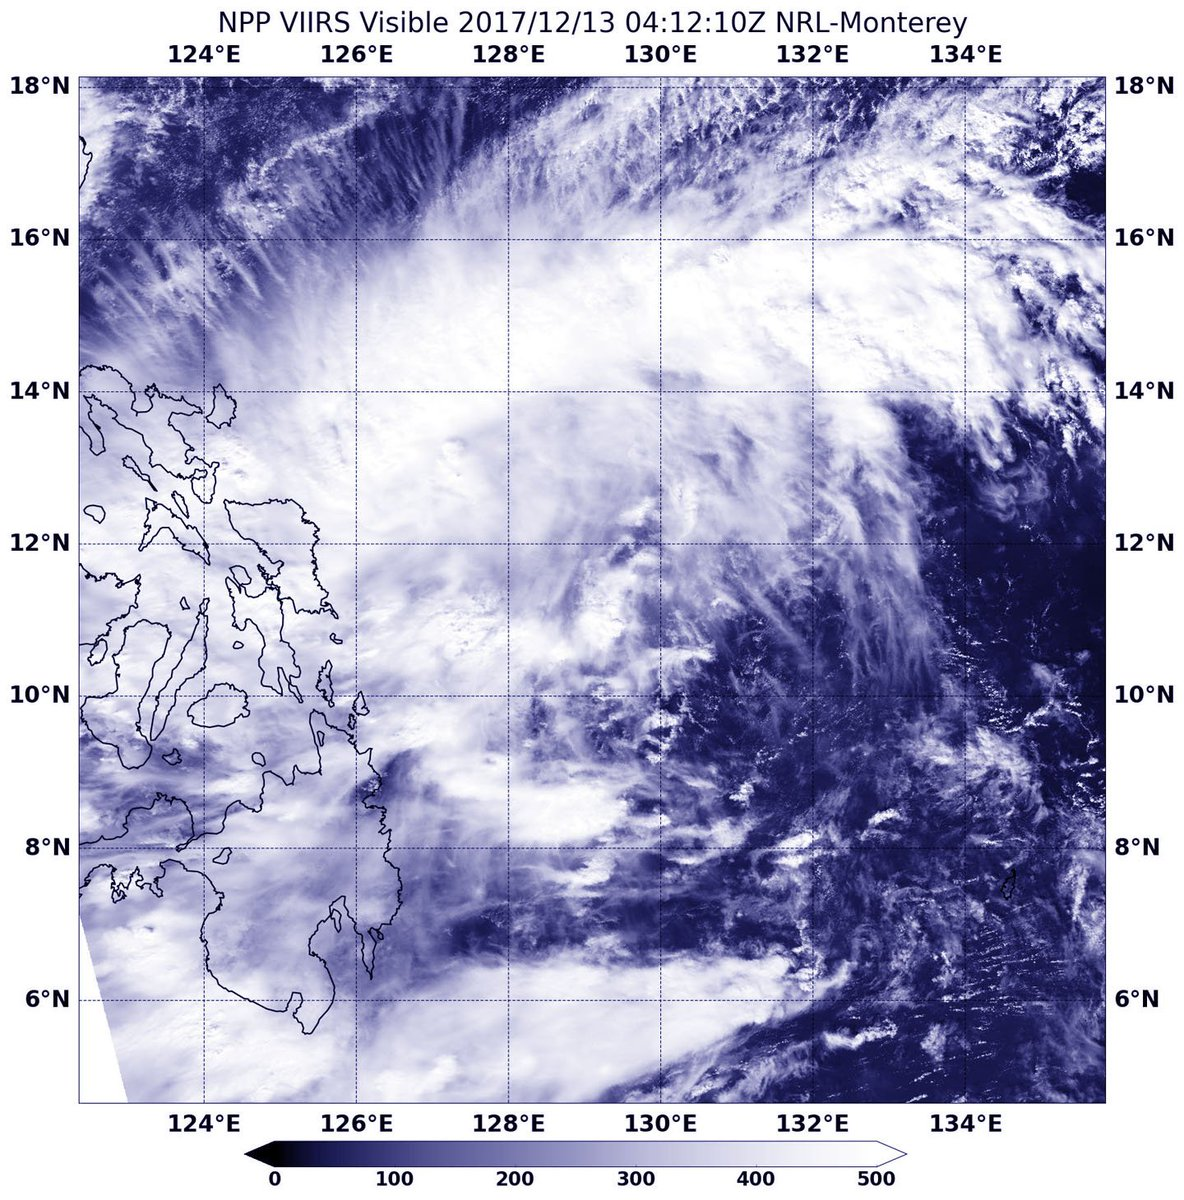 NW Pacific Ocean - NASA Sees Developing System 96W Affecting Central Philippines A developing area of tropical low pressure designated System 96W was affecting the central Philippines when NASA-NOAA's Suomi NPP satellite passed overhead. https://t.co/gZV4GxqHSc